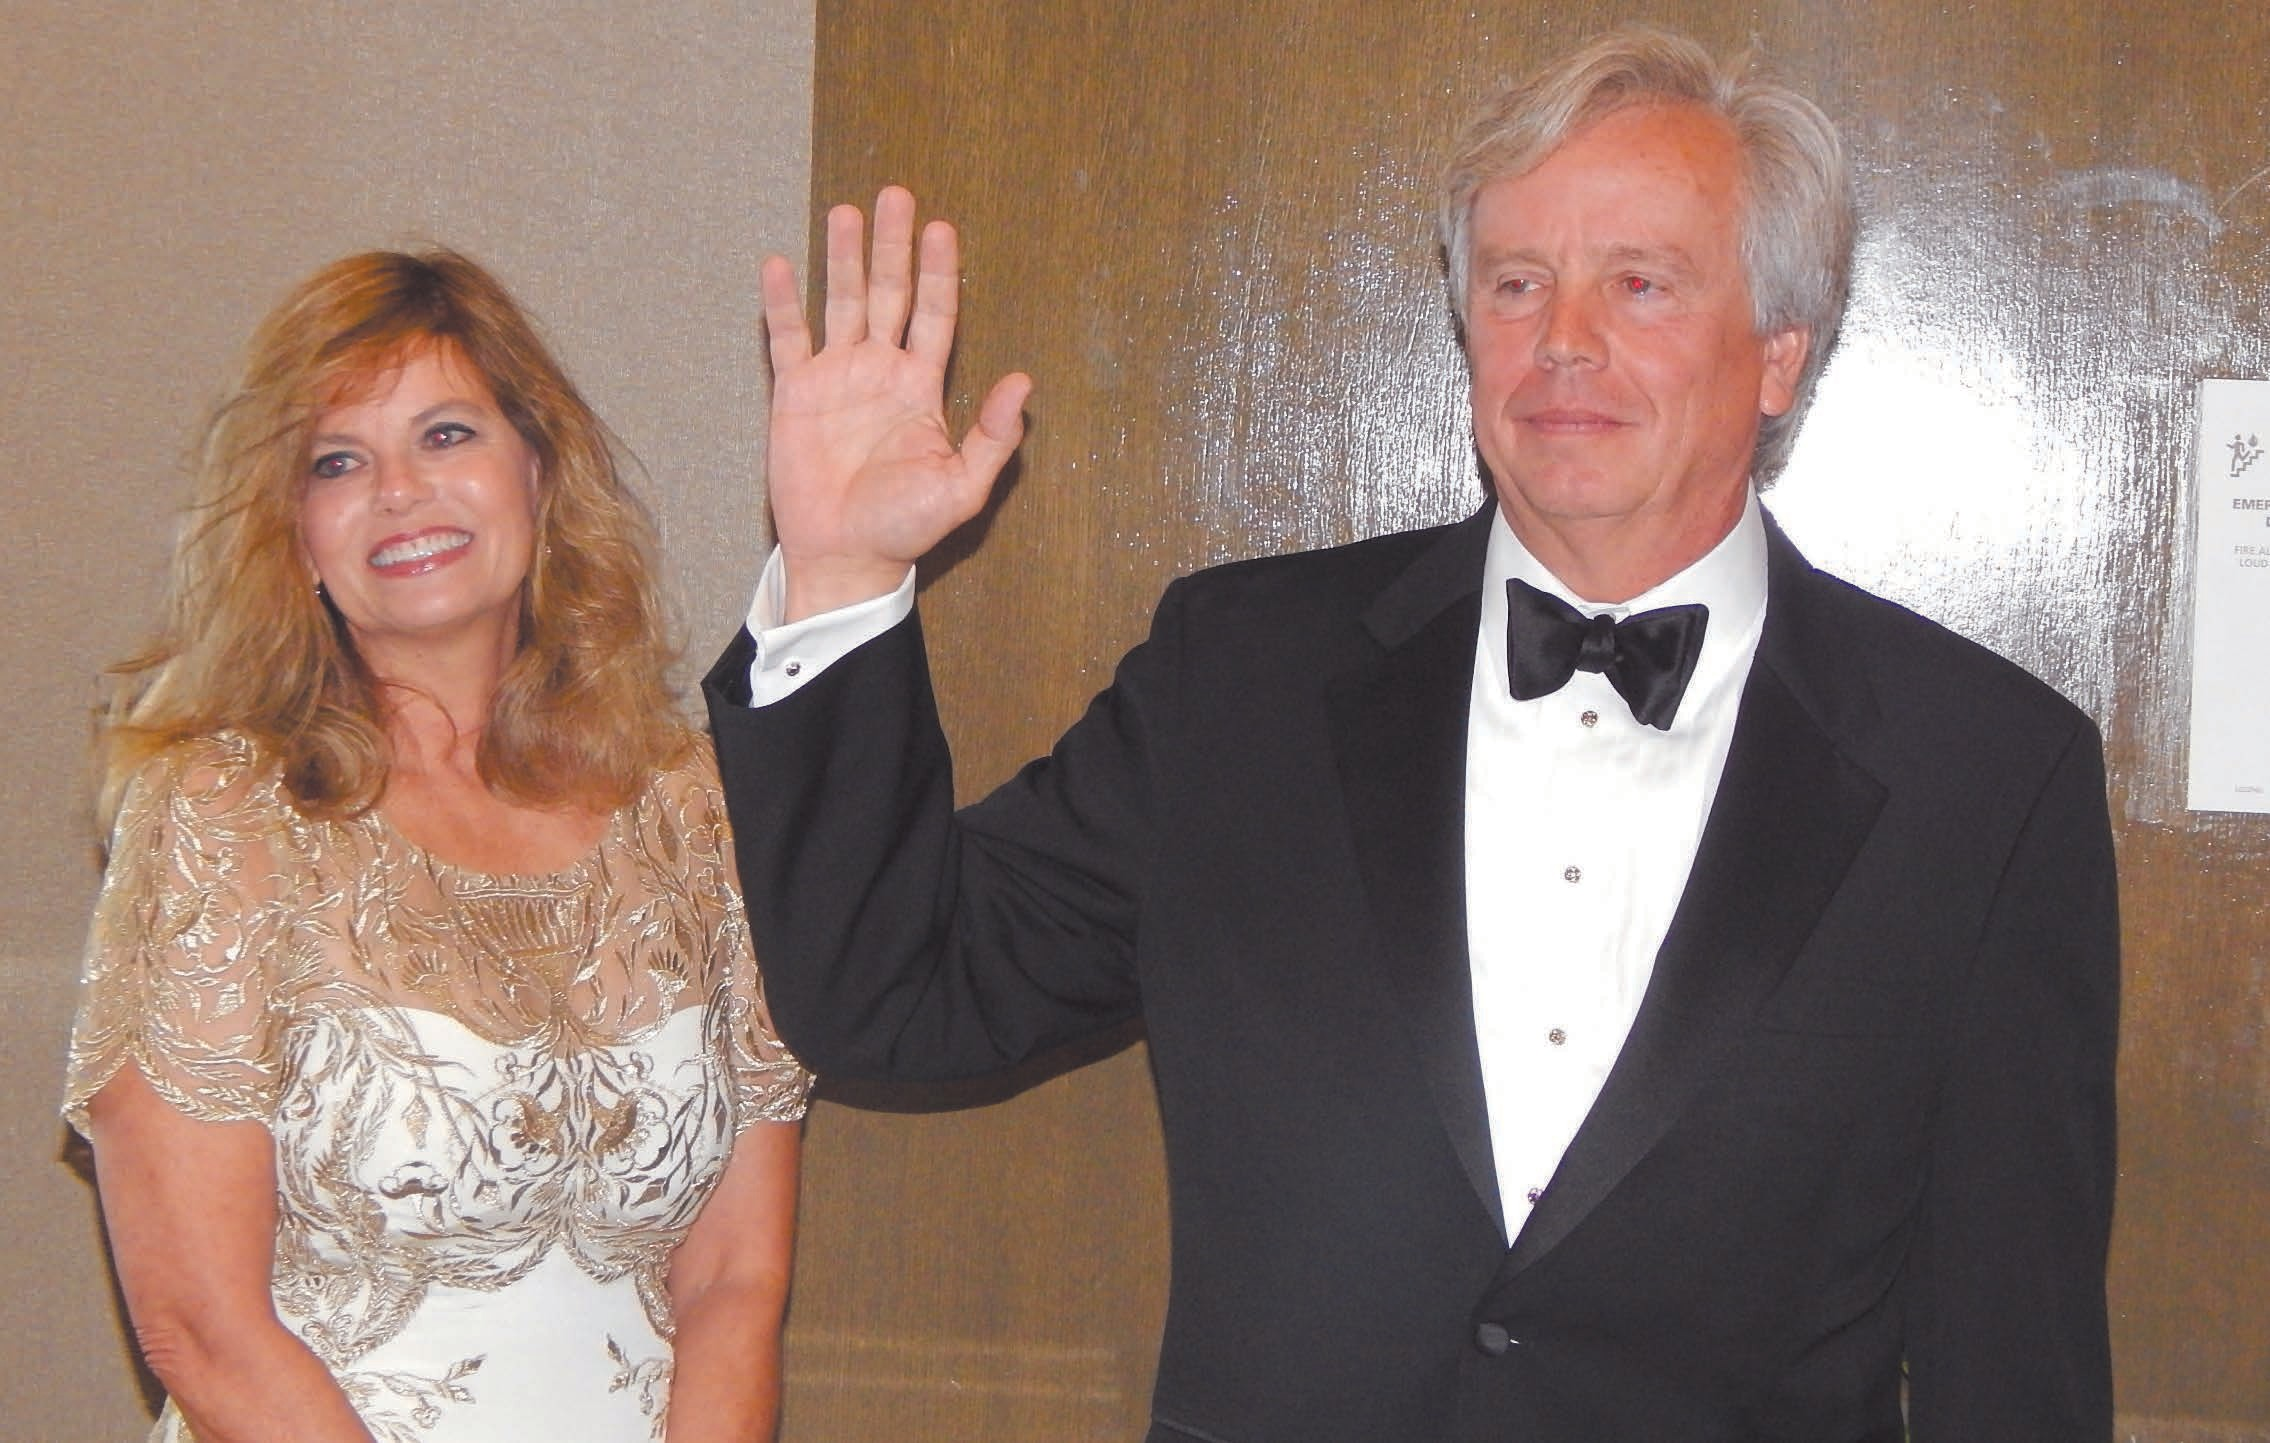 Lamar Smith was installed as HBAG President and his wife Edie looks on